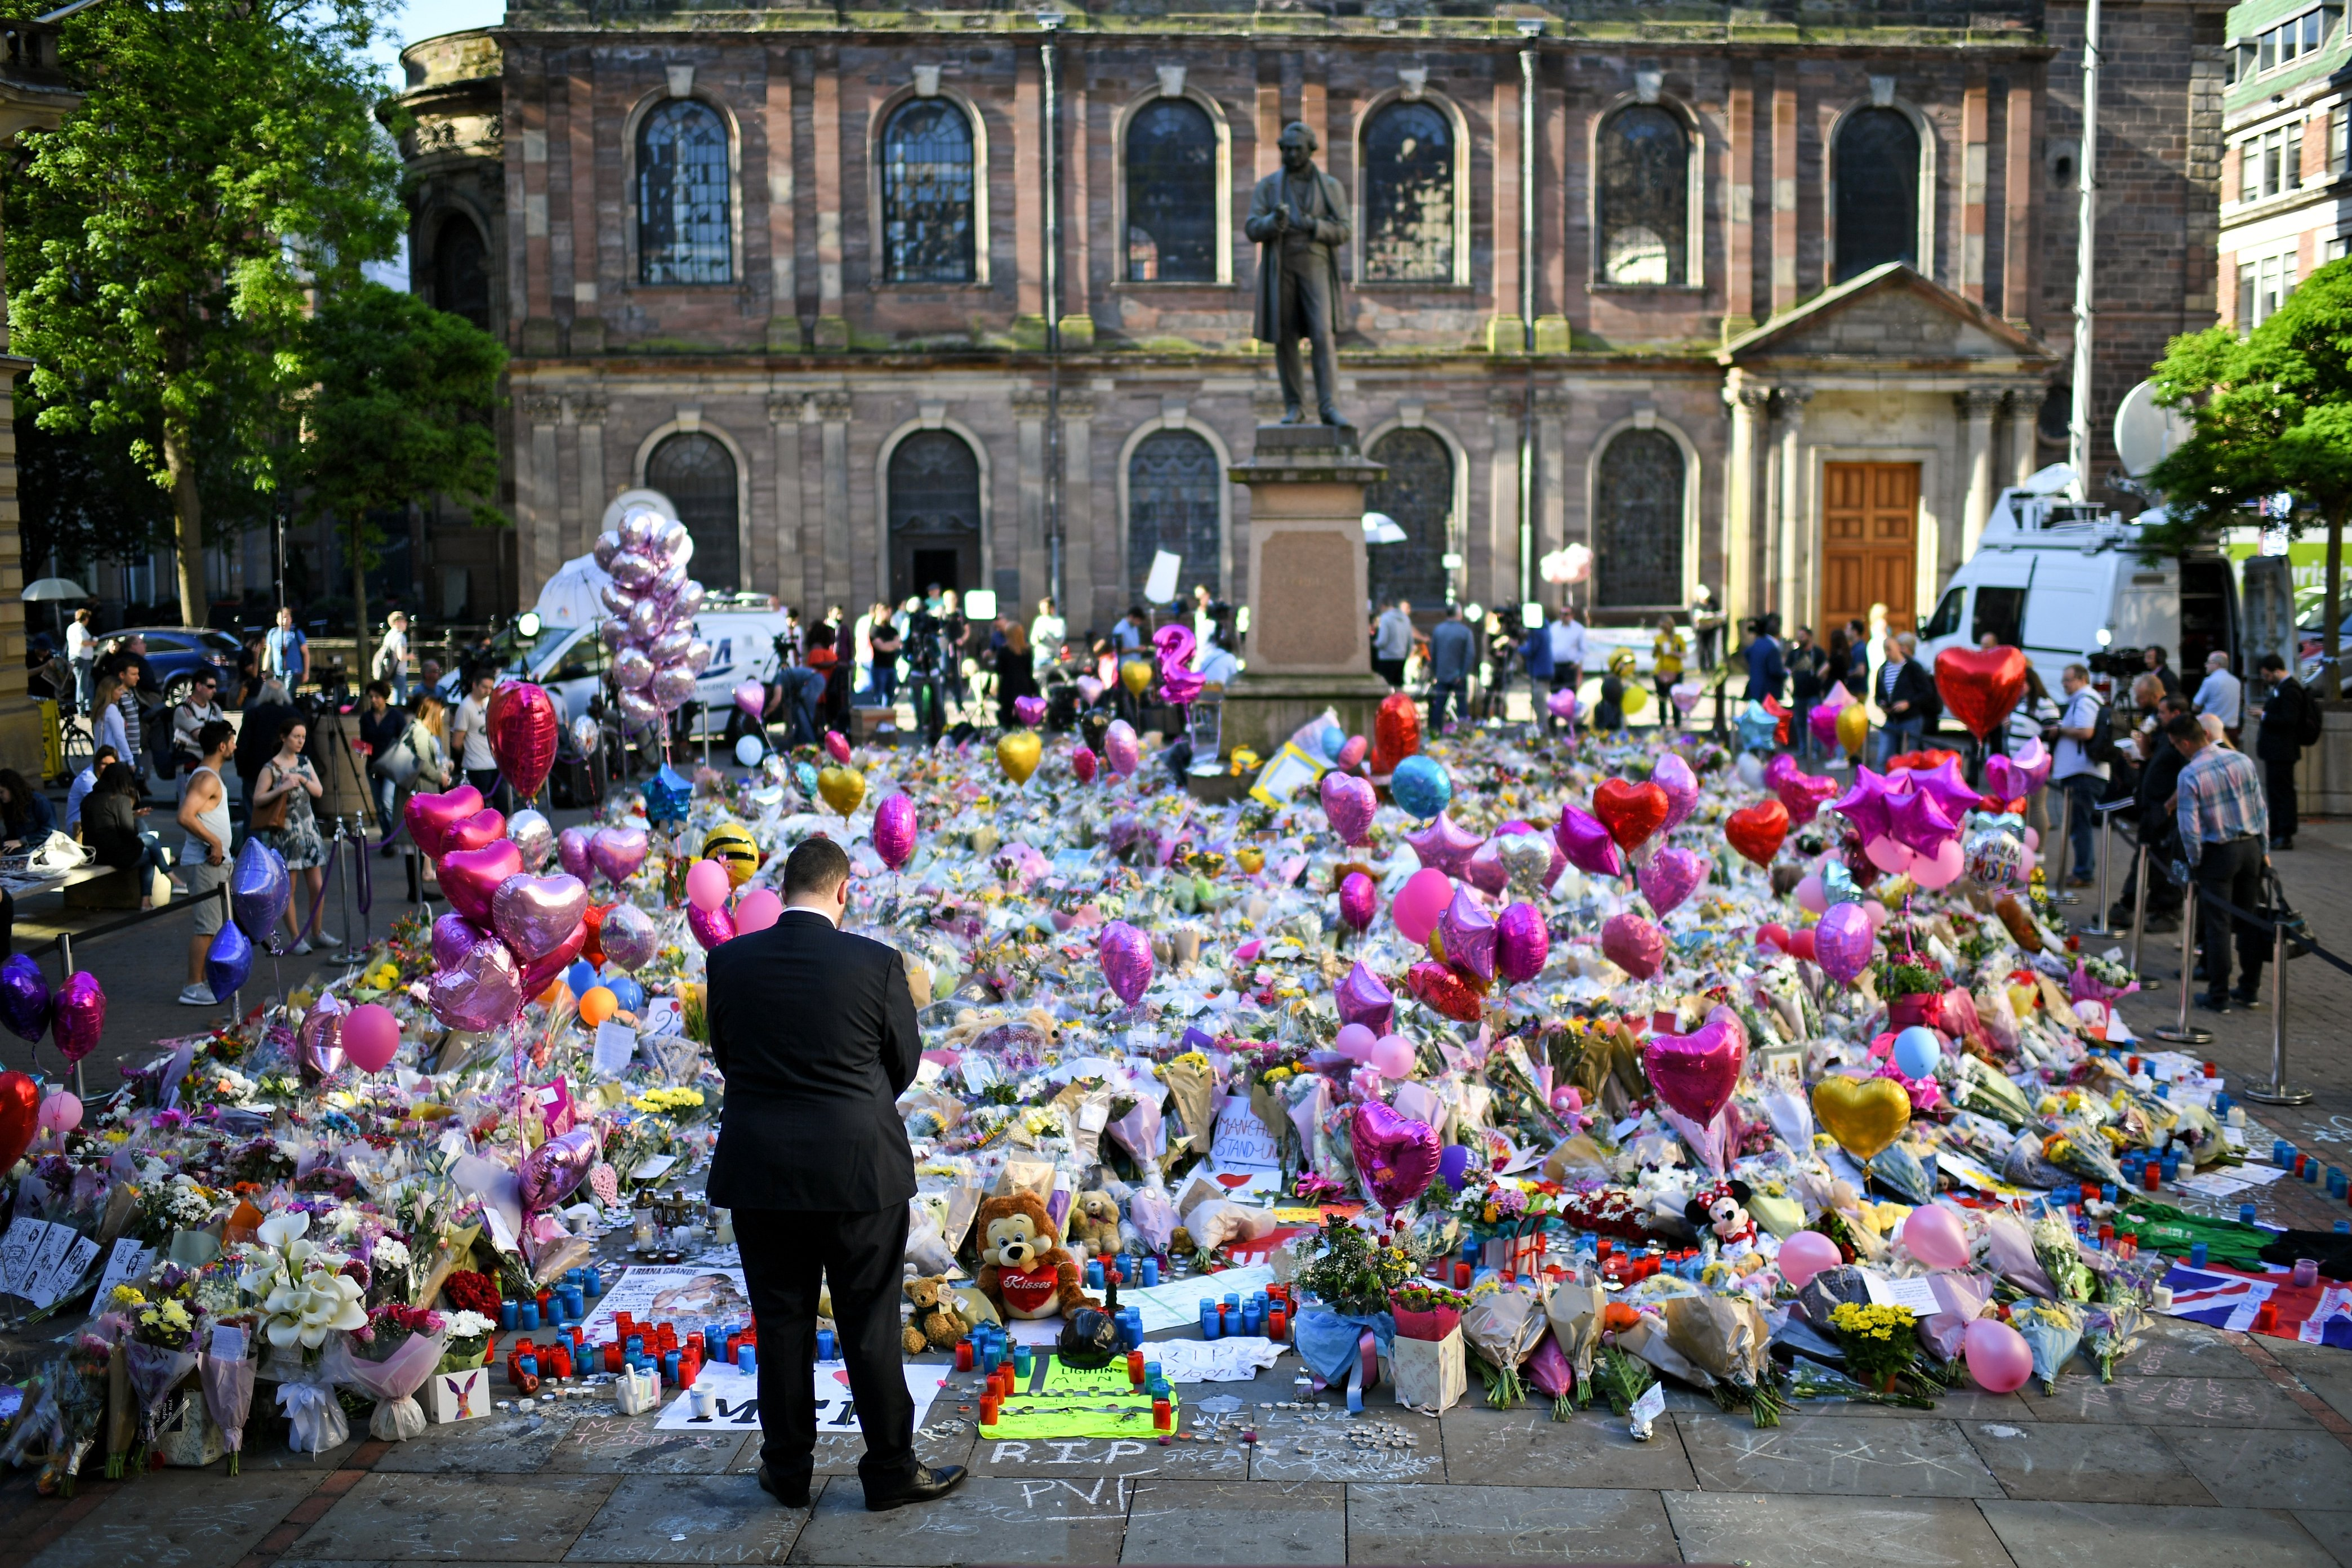 Members of the public look at tributes left in St Ann's Square for the people who died in Monday's terror attack at the Manchester Arena on May 26, 2017 in Manchester, England.